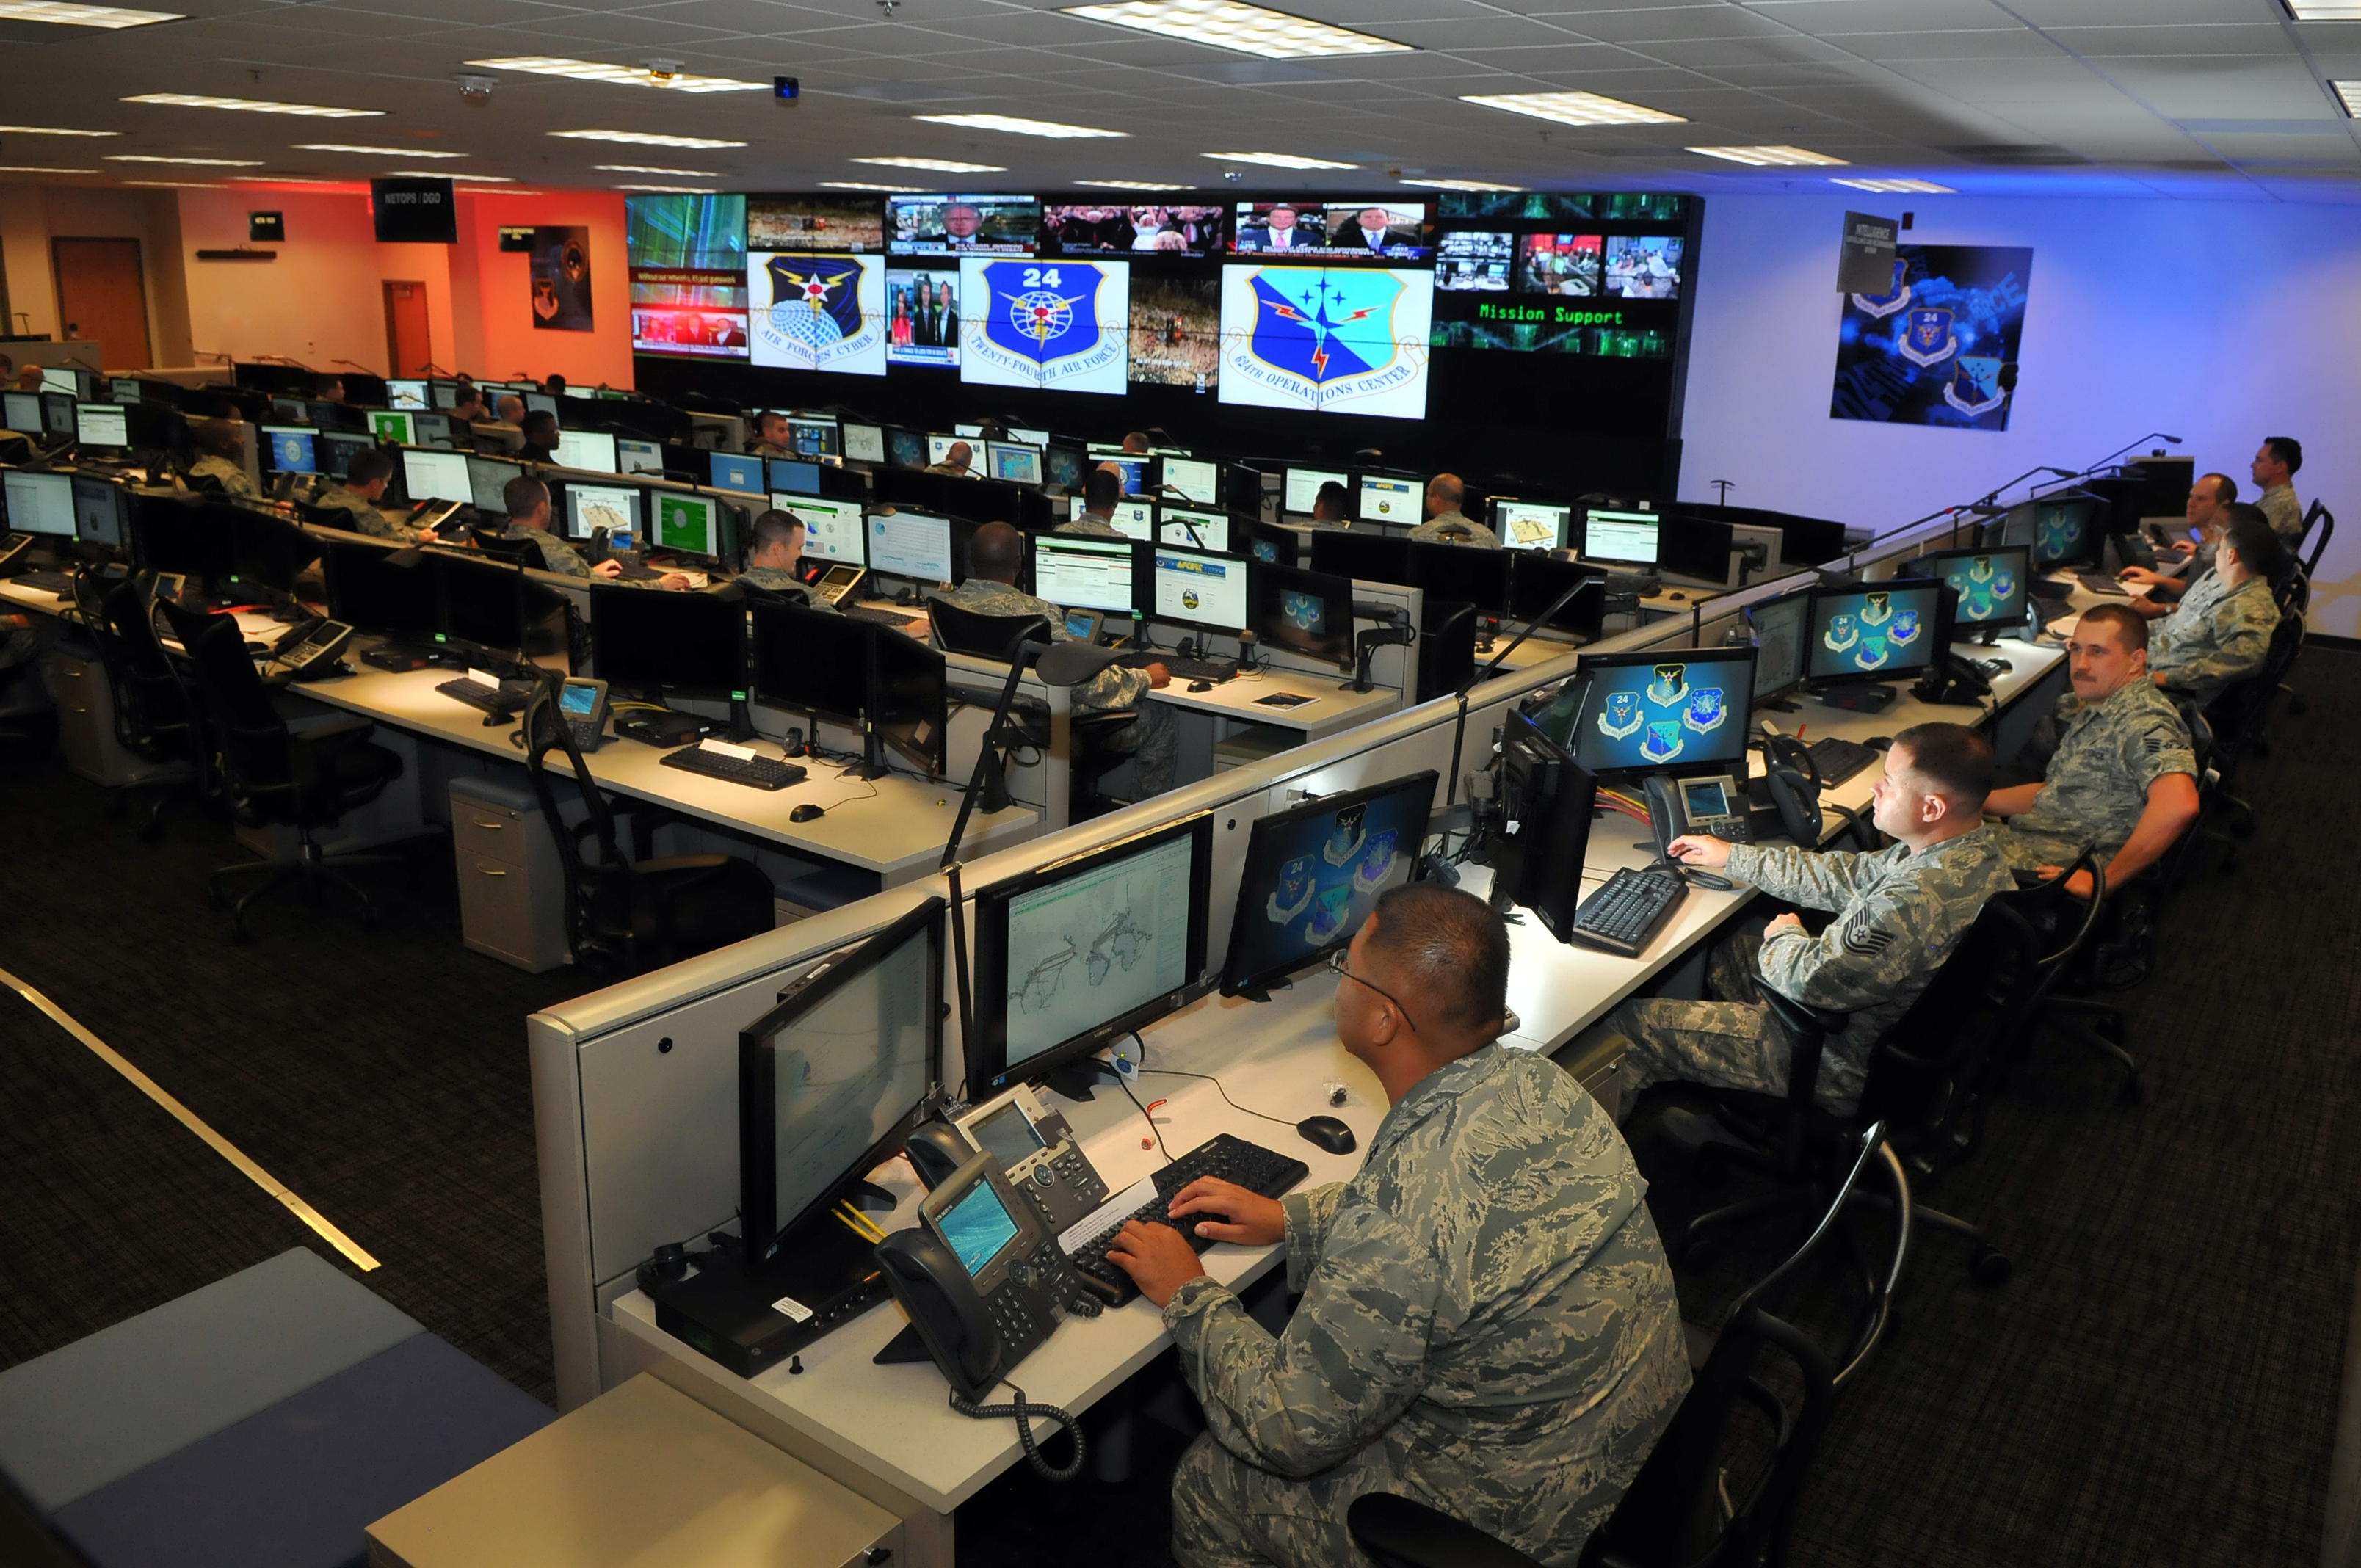 Personnel of the 624th Operations Center, located at Joint Base San Antonio - Lackland, conduct cyber operations in support of the command and control of Air Force network operations and the joint requirements of Air Forces Cyber, the Air Force component of U.S. Cyber Command. The 624th OC is the operational arm of the 24th Air Force, and benefits from lessons learned during exercises such as Cyber Flag 13-1. (U.S. Air Force photo by William Belcher)